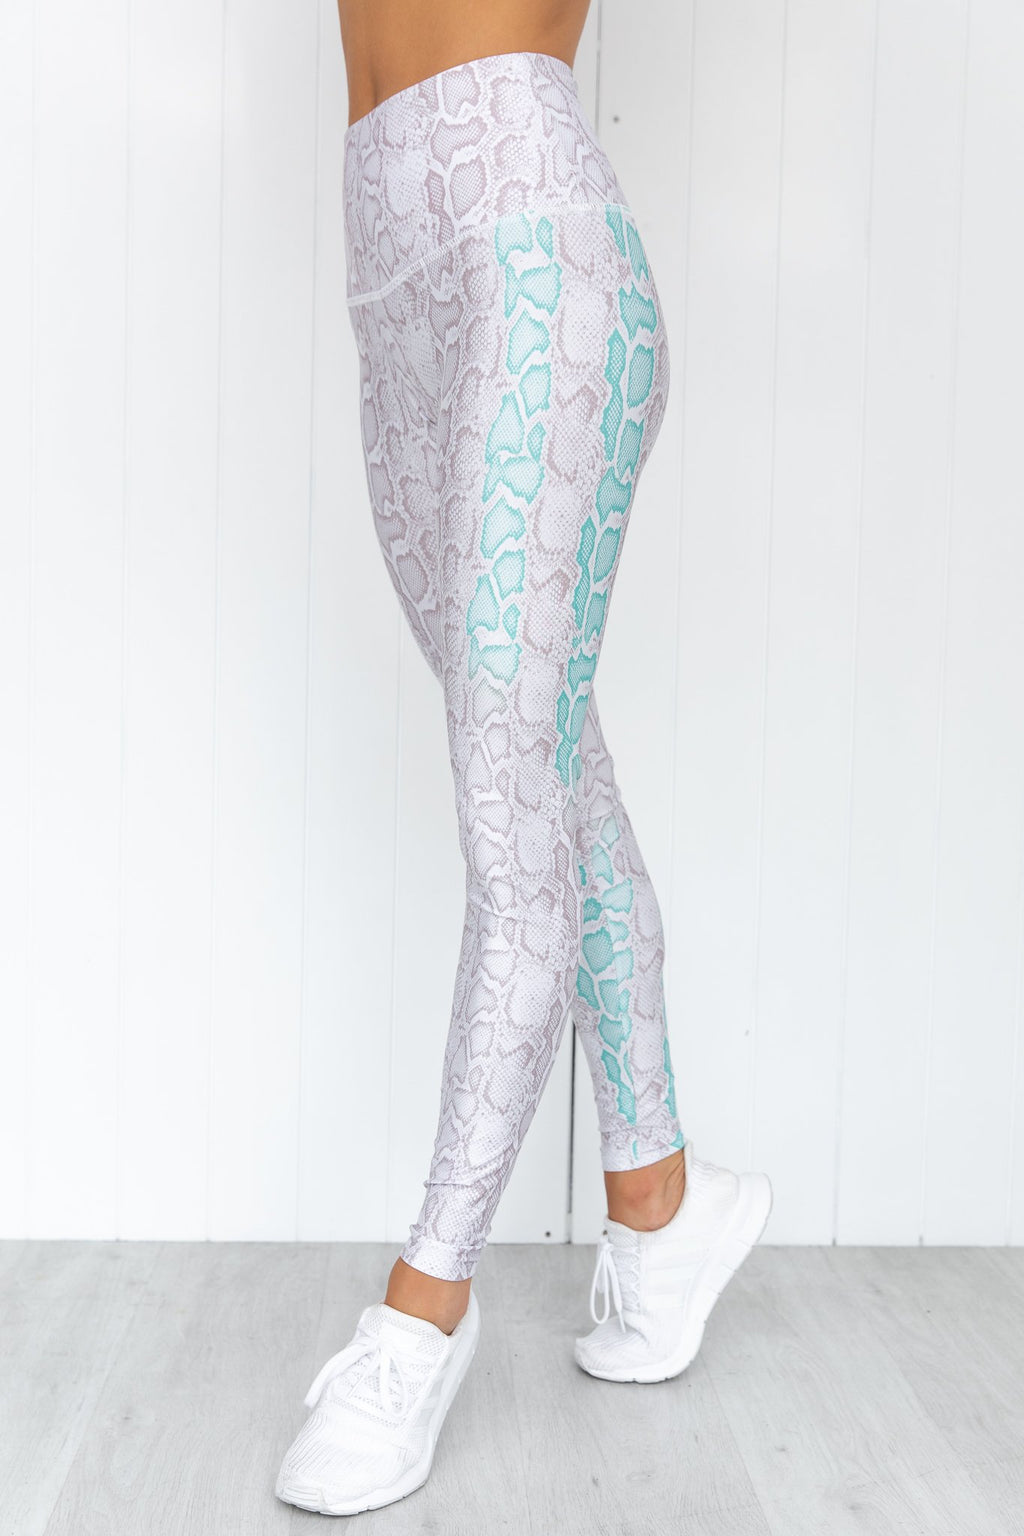 Opal ViperHigh Rise Graphic Legging